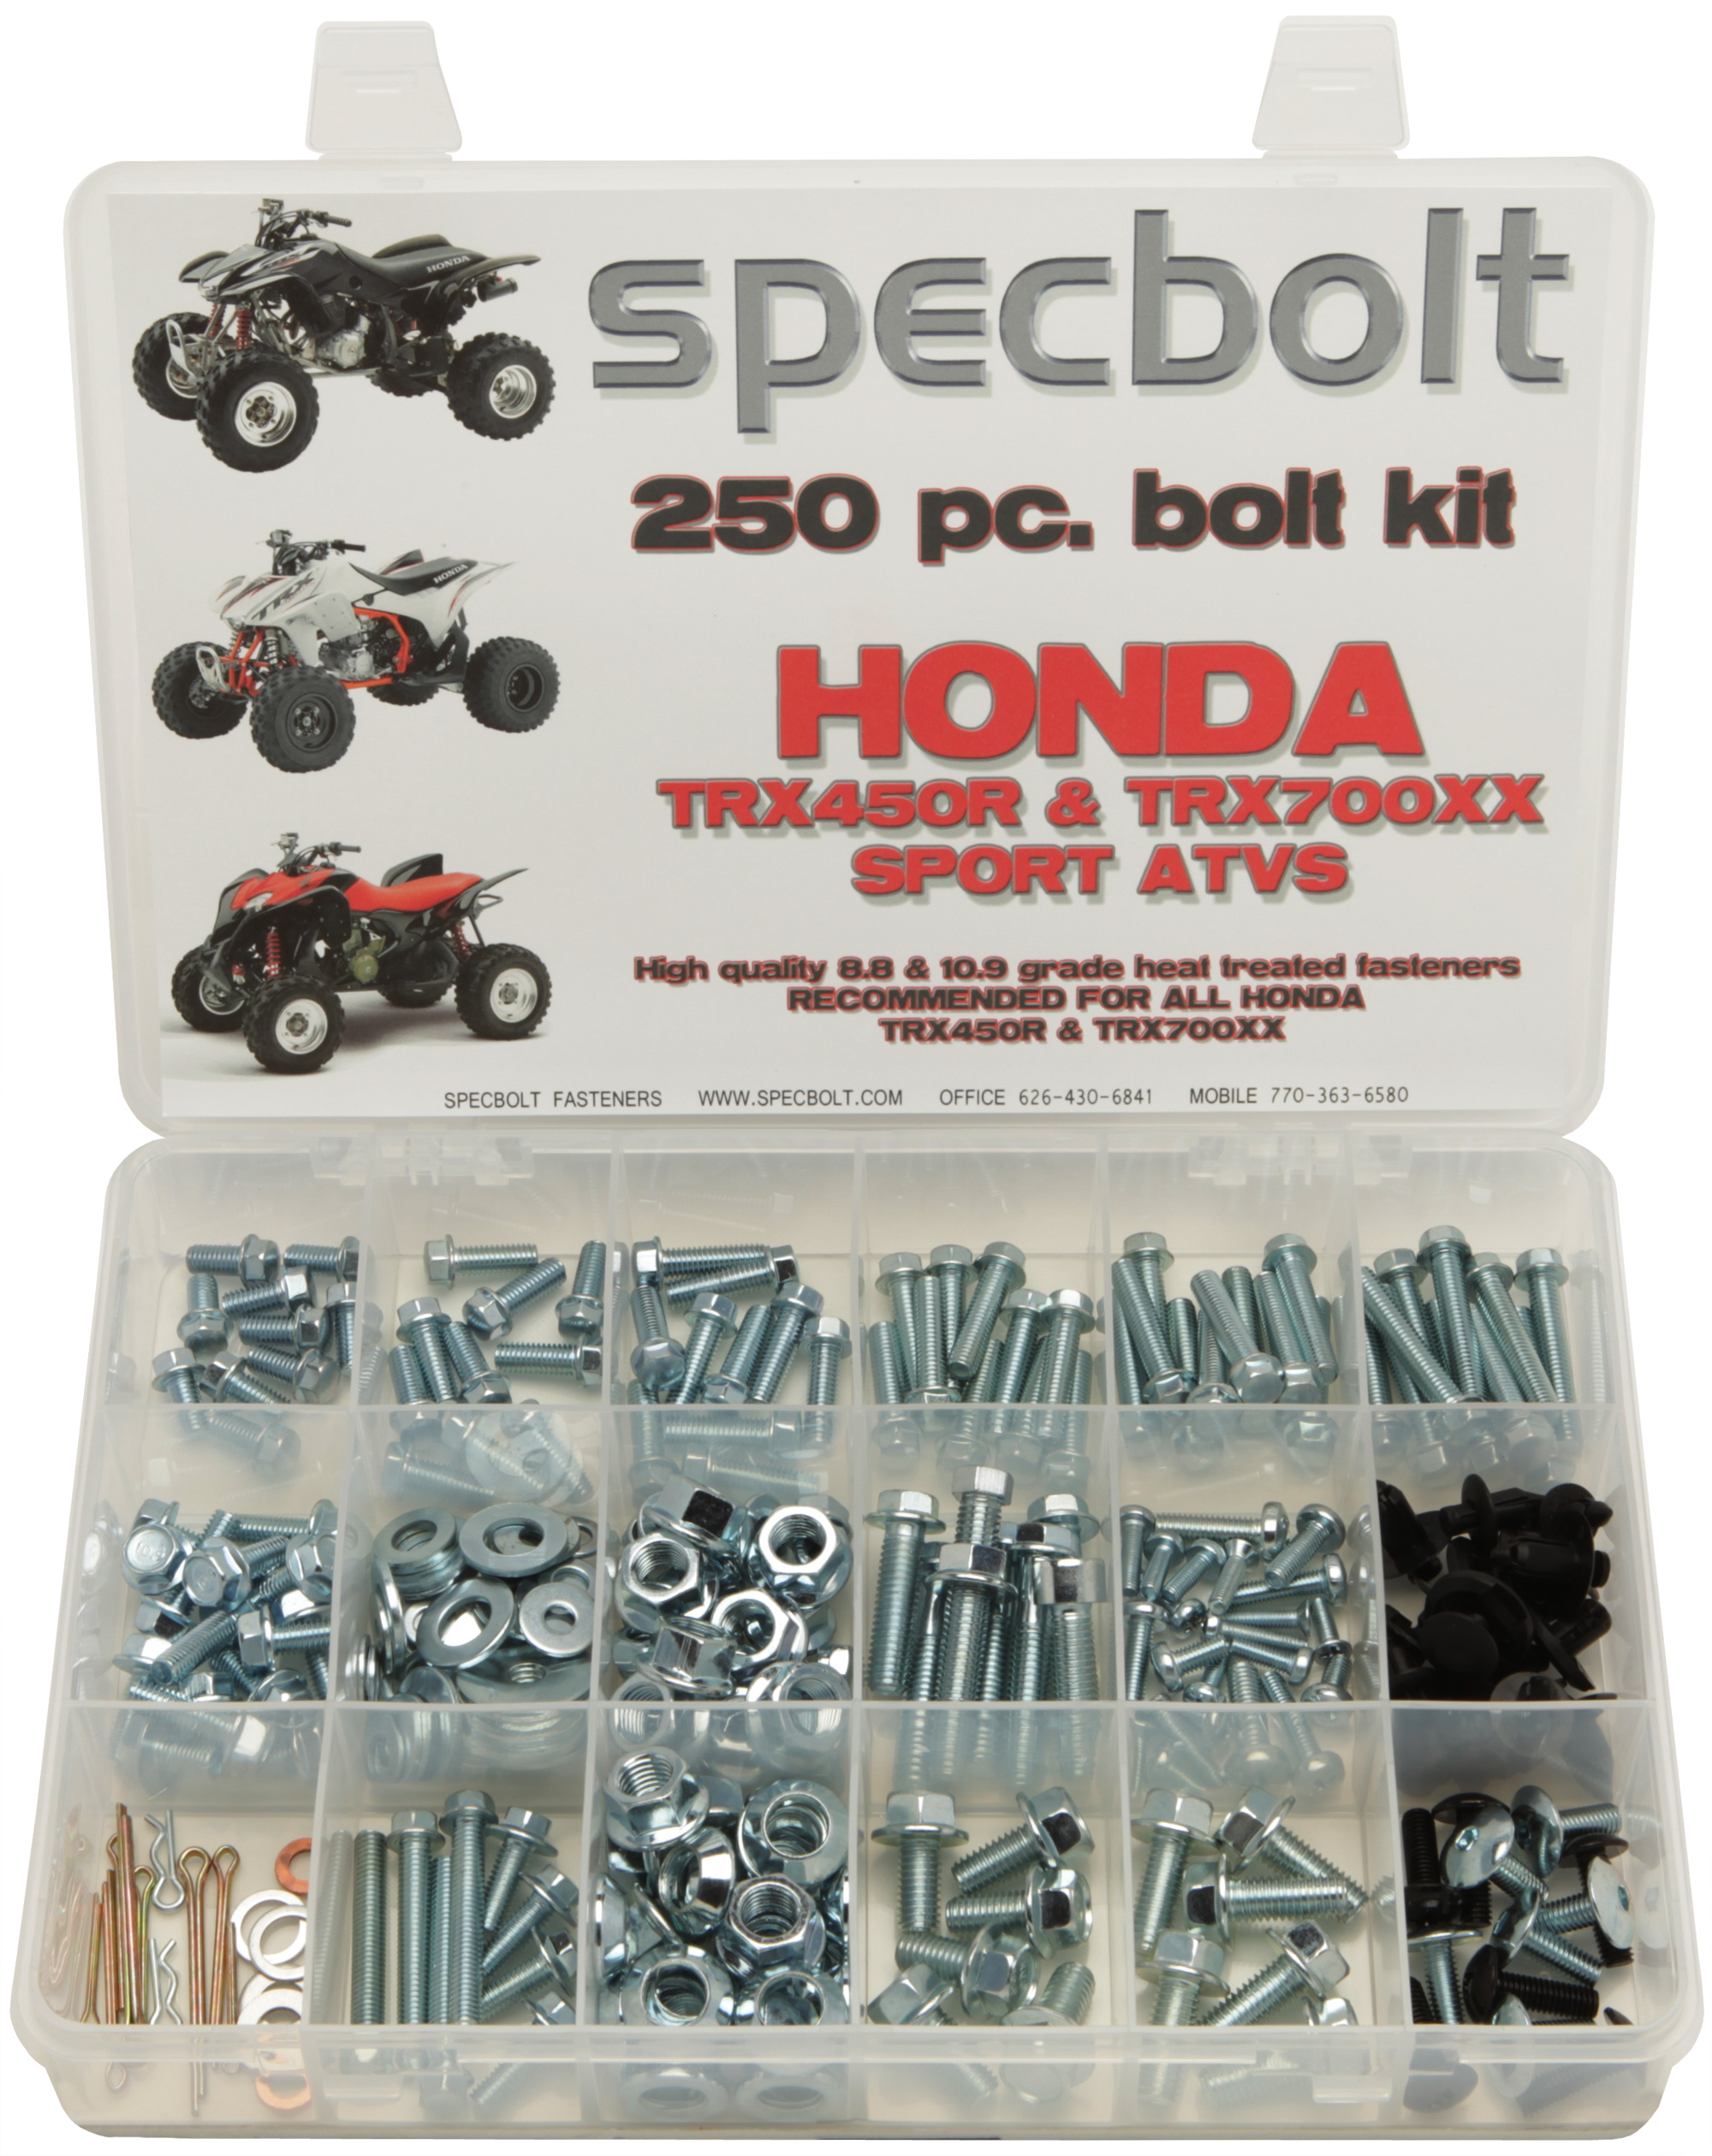 250 piece kit for Honda TRX450R ATV